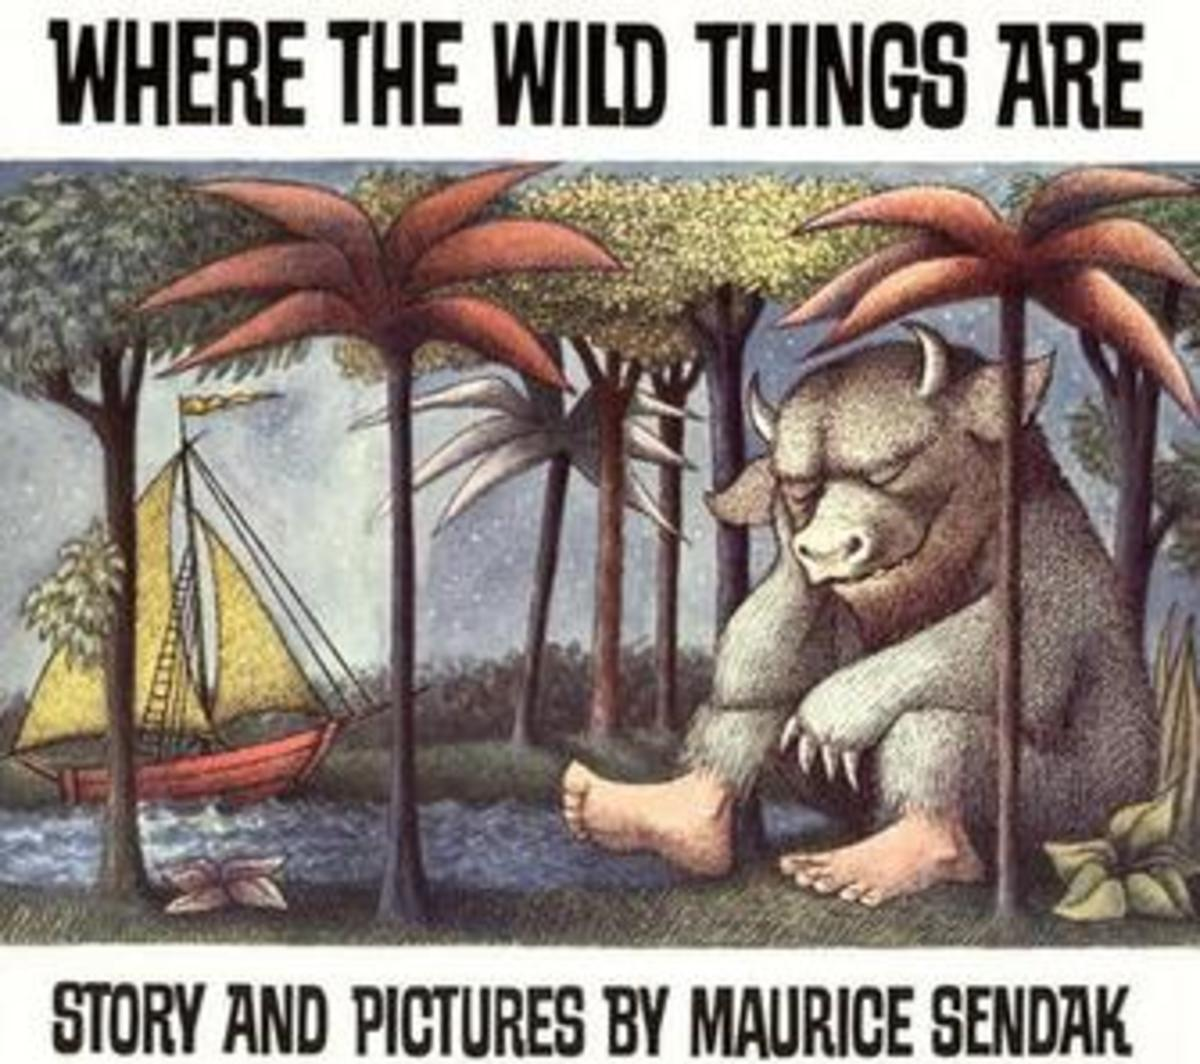 Maurice Sendak was multitalented. In addition to writing and illustrating children's books, he also designed the costumes and sets for ballets such as The Nutcracker and cowrote the opera for Where the Wild Things Are with Oliver Knussen.